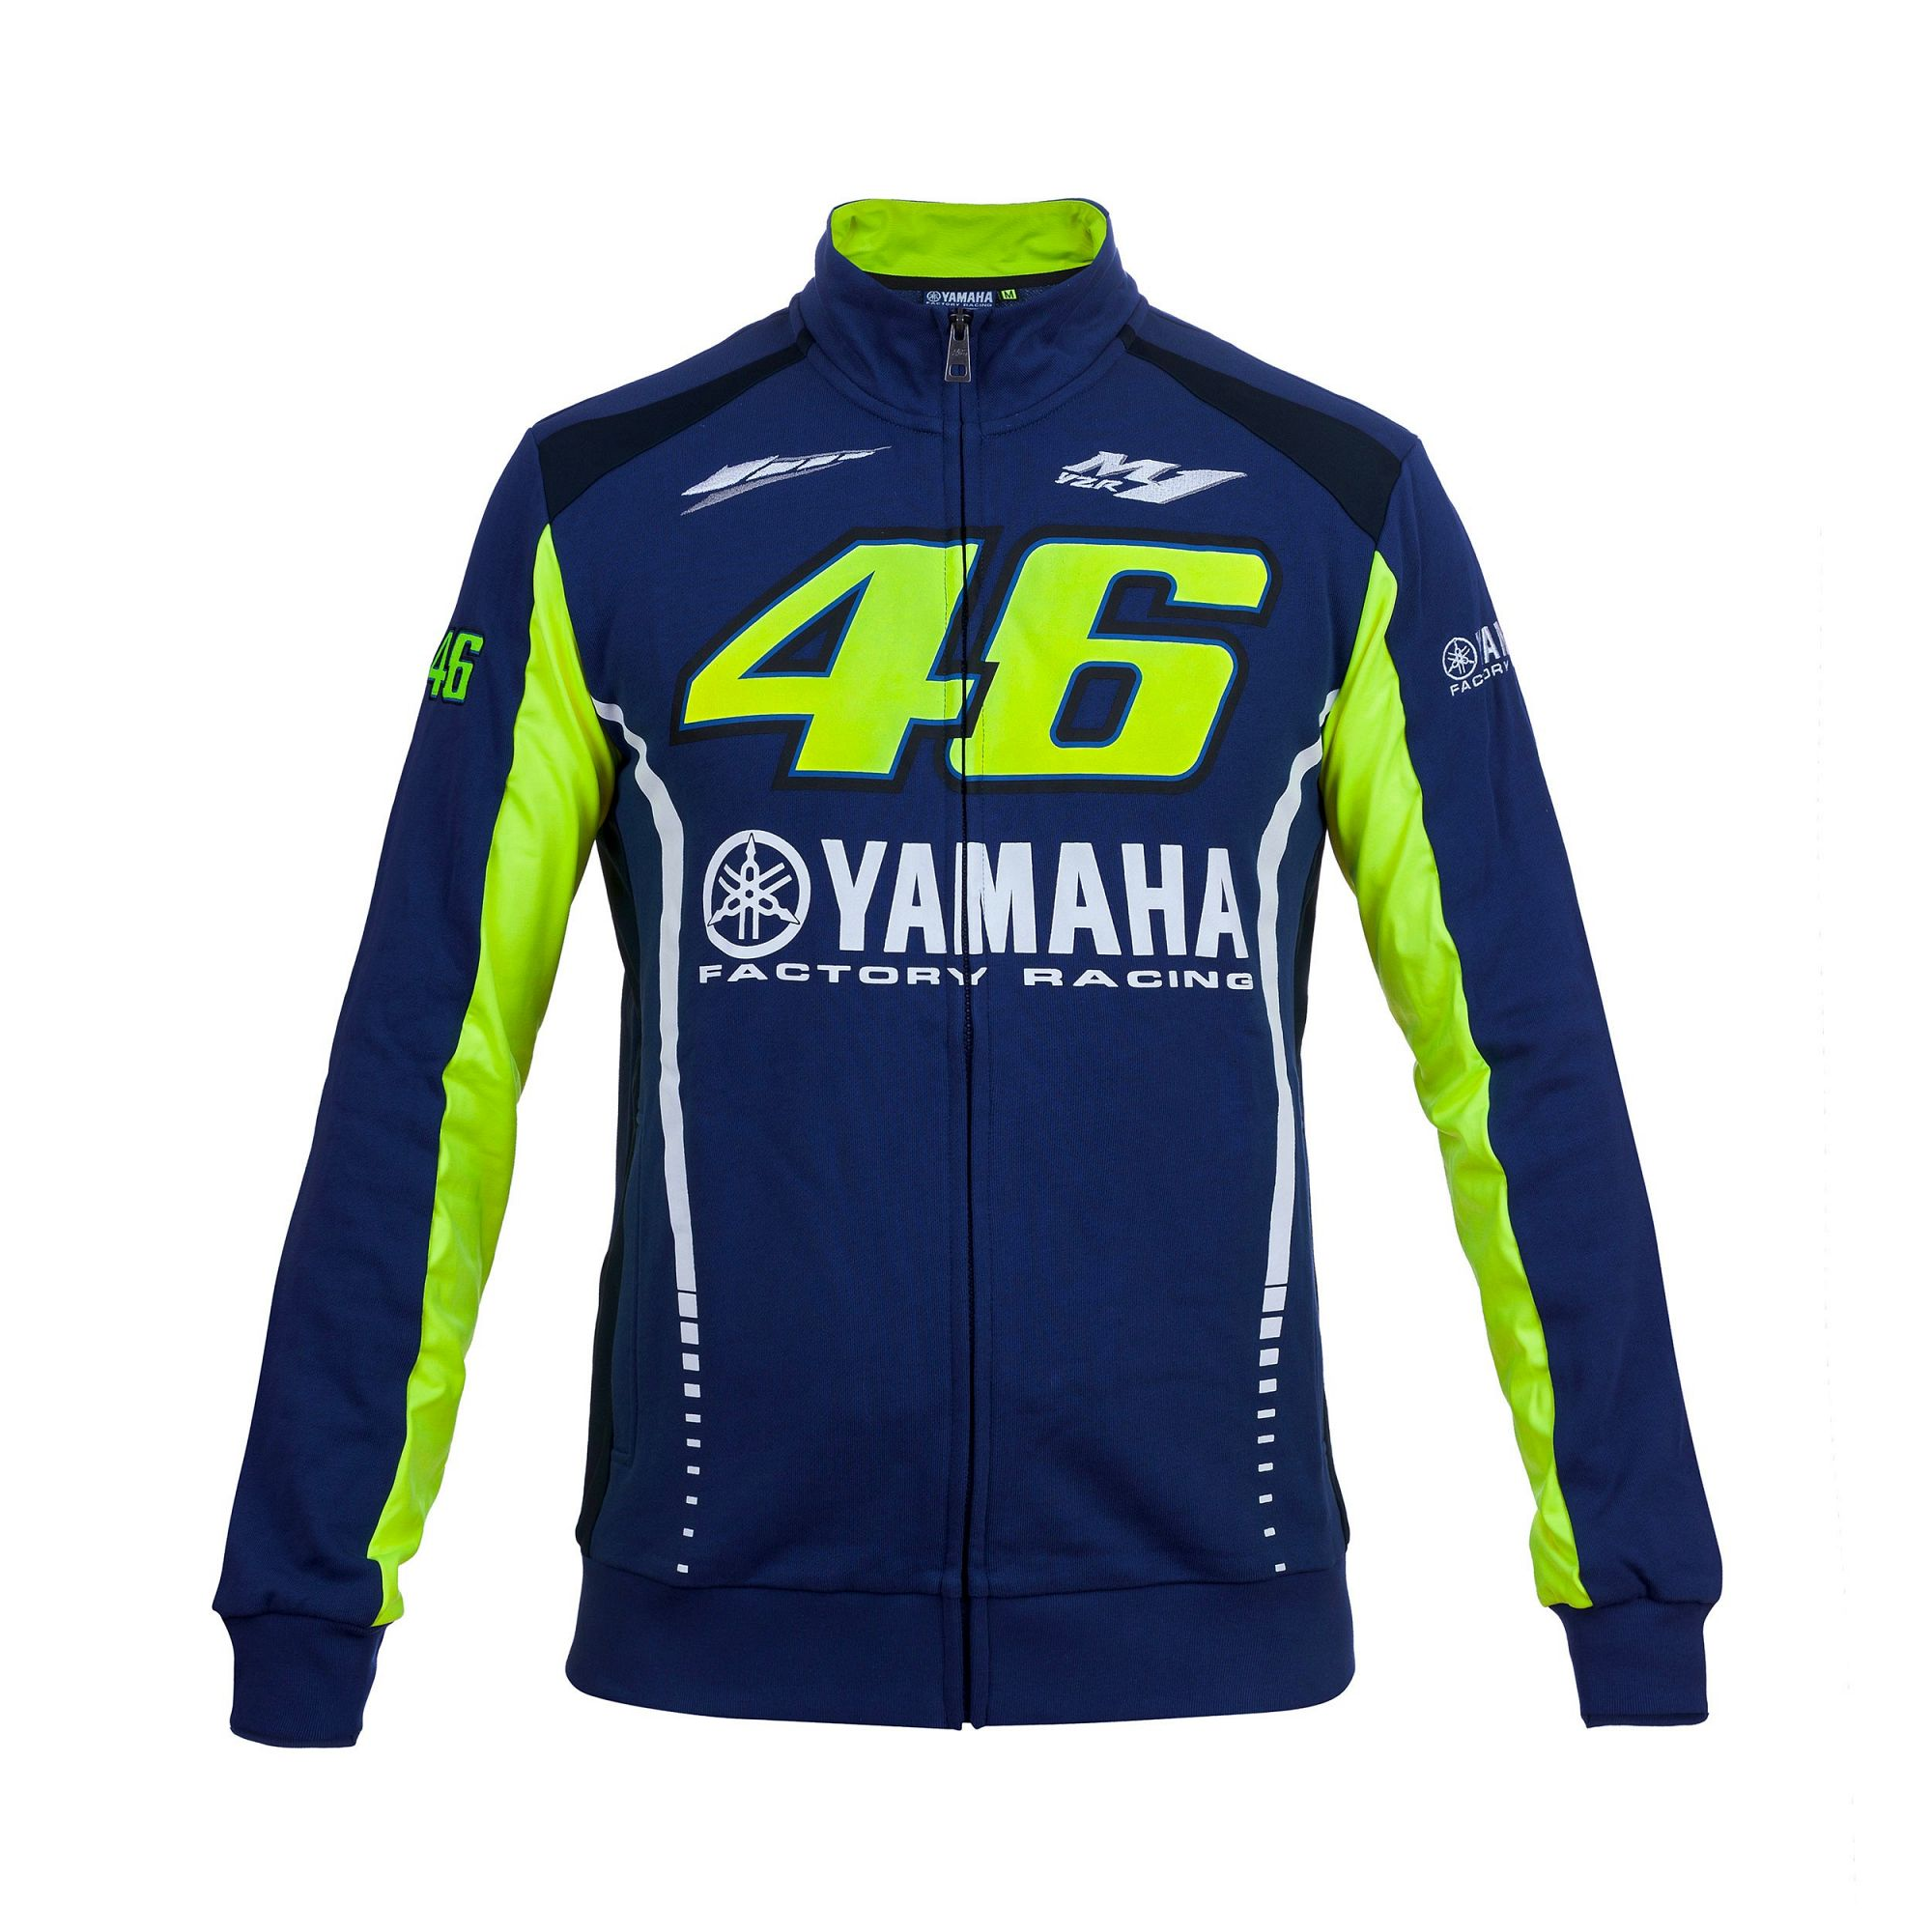 Moto GP Motorcycle Riding Zip Hoodie Crew Fleece for Yamaha Racing Blue Mens FELPA Zip-up Sweater